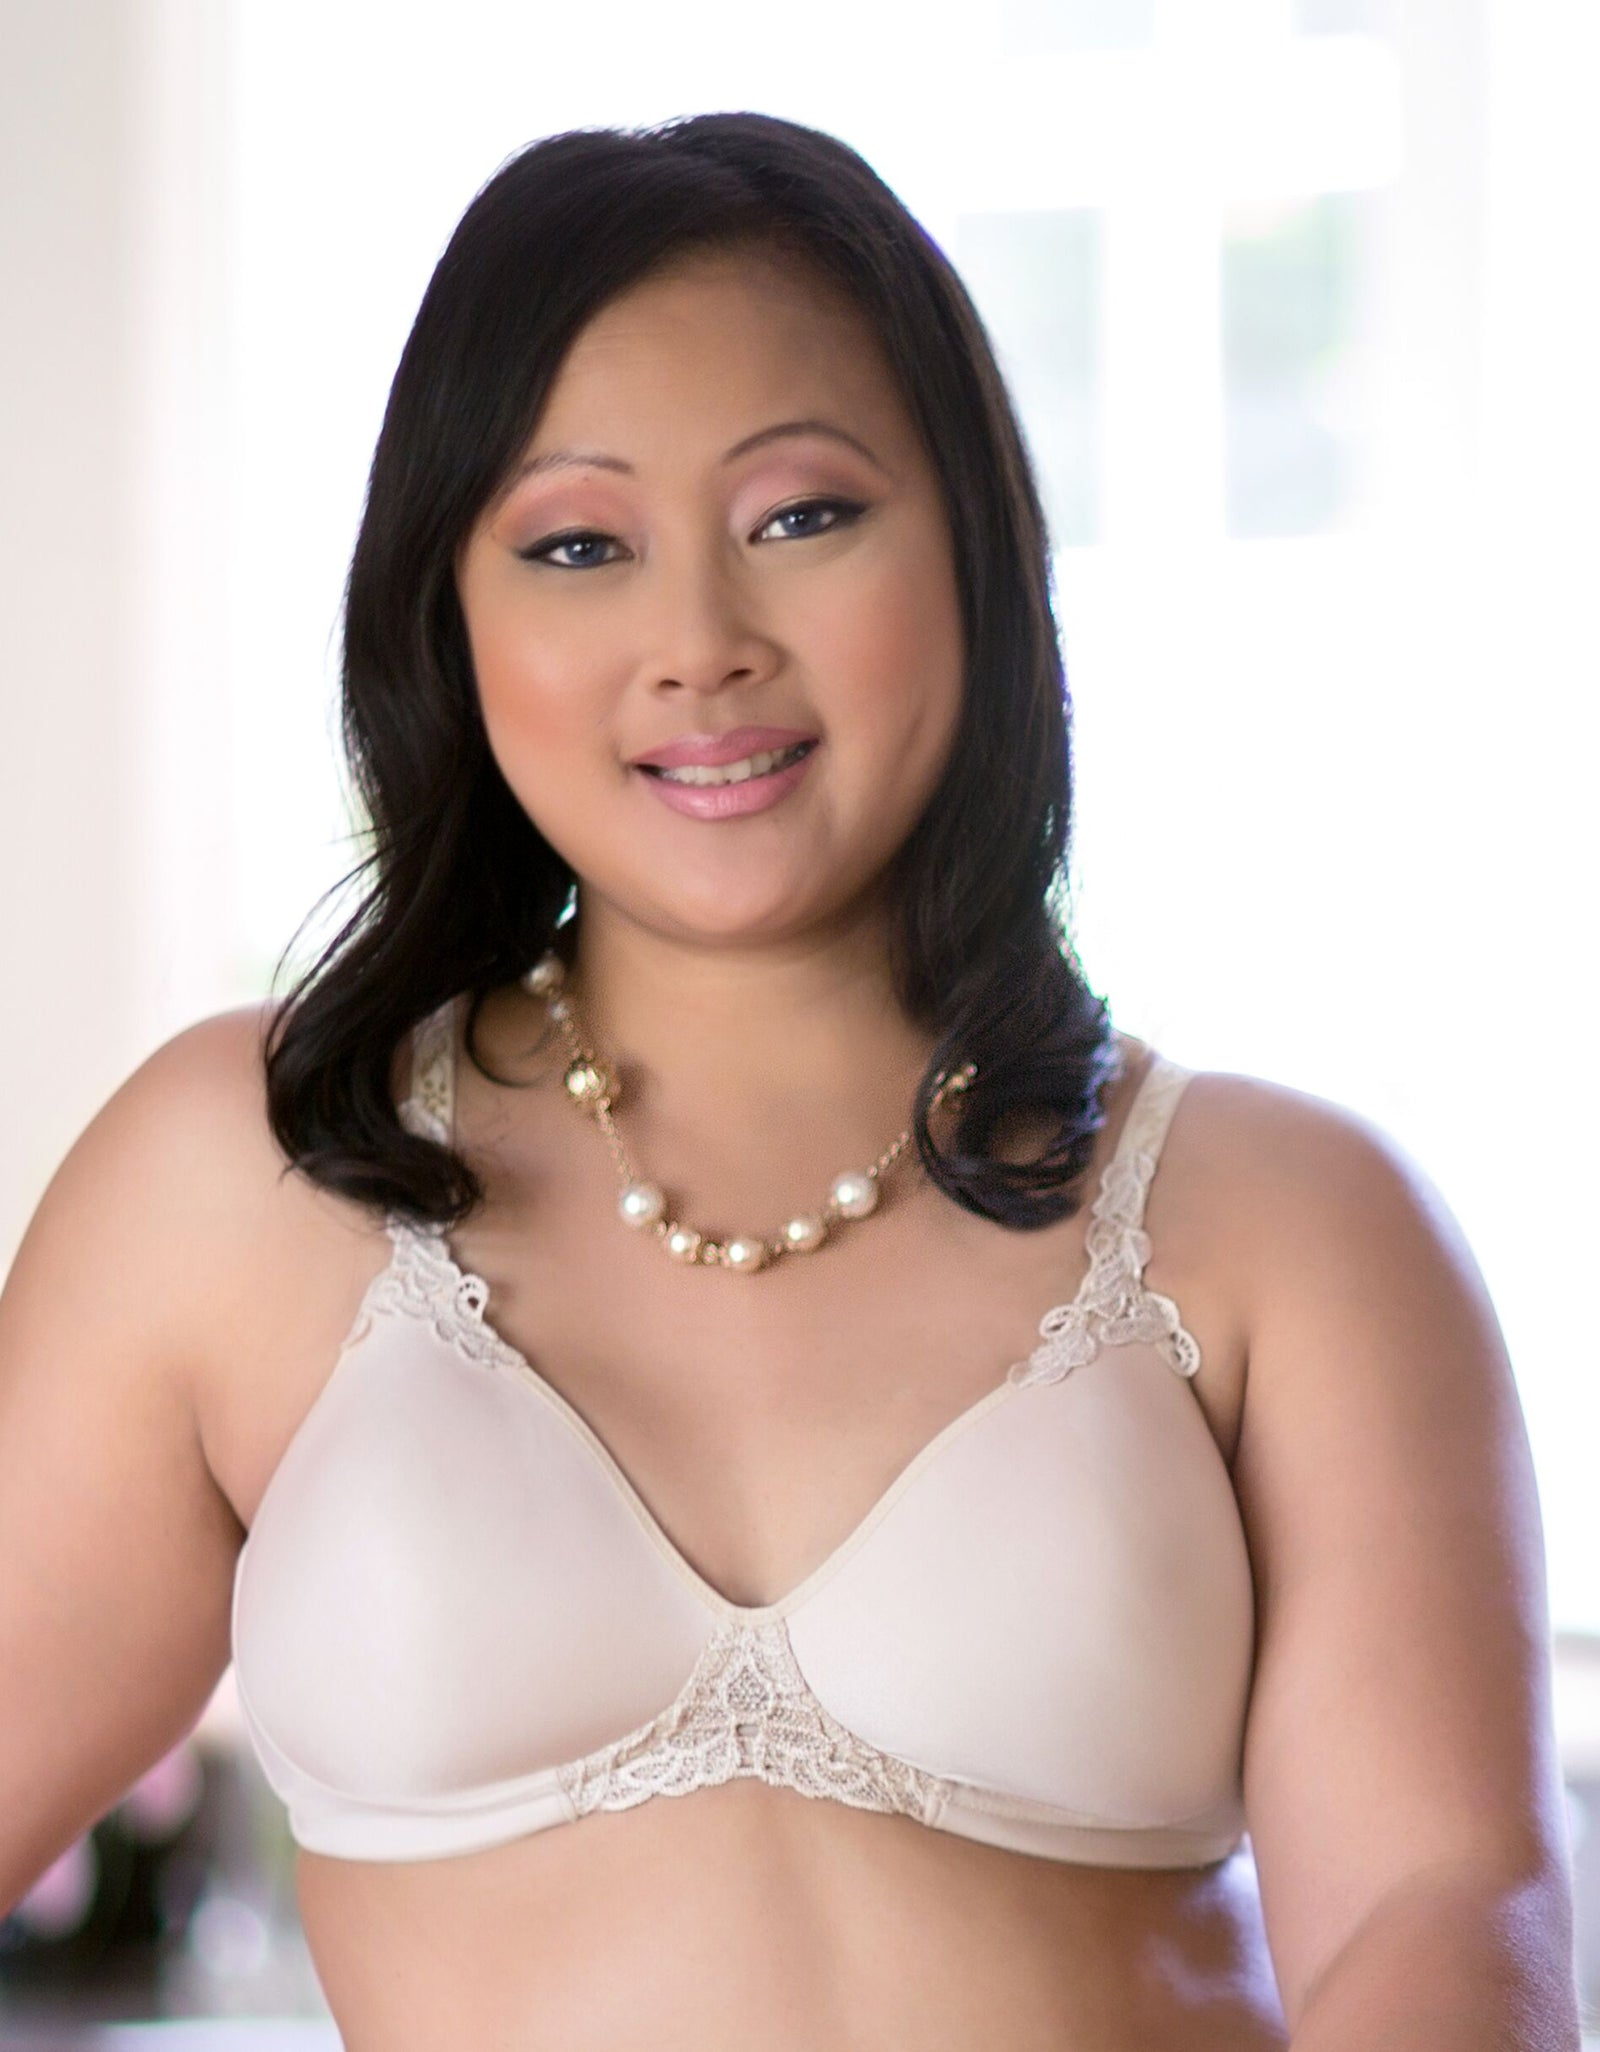 105 ABC Petite Fit Mastectomy Bra